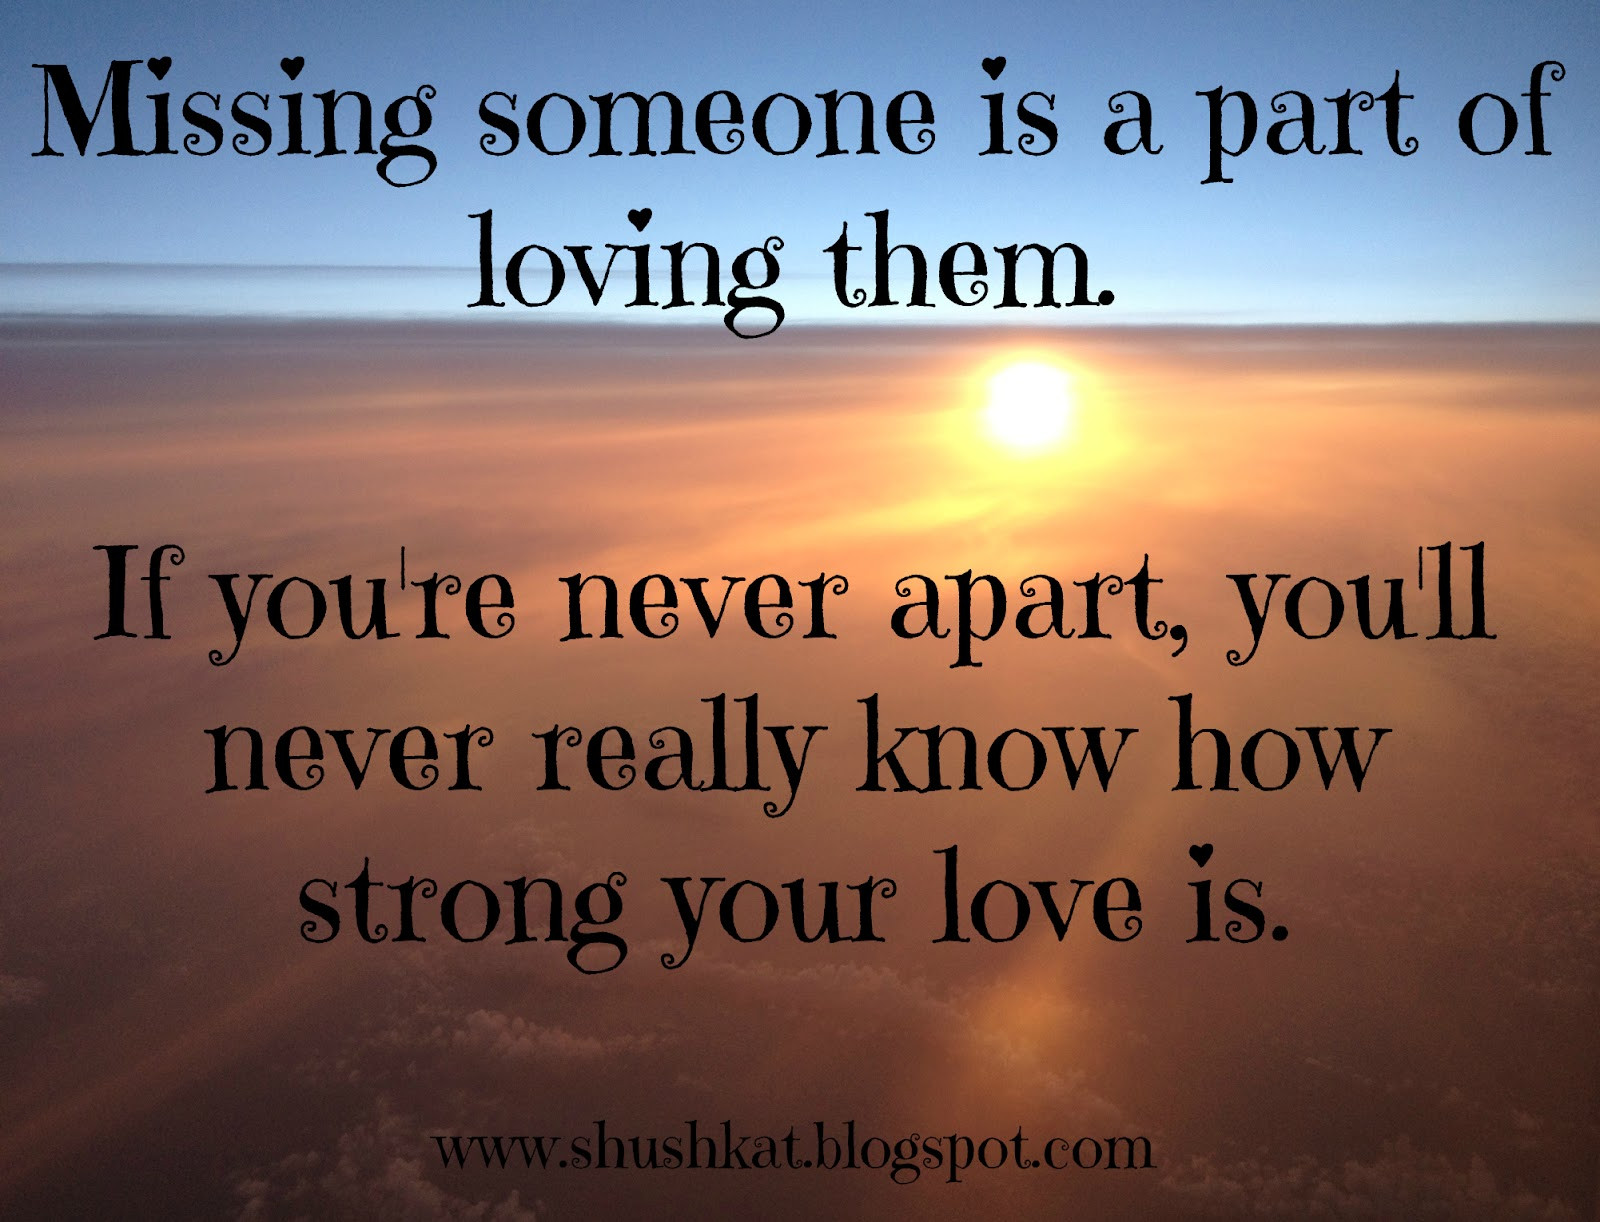 Quotes About Missing Someone You Love  Quotes About Missing Someone QuotesGram